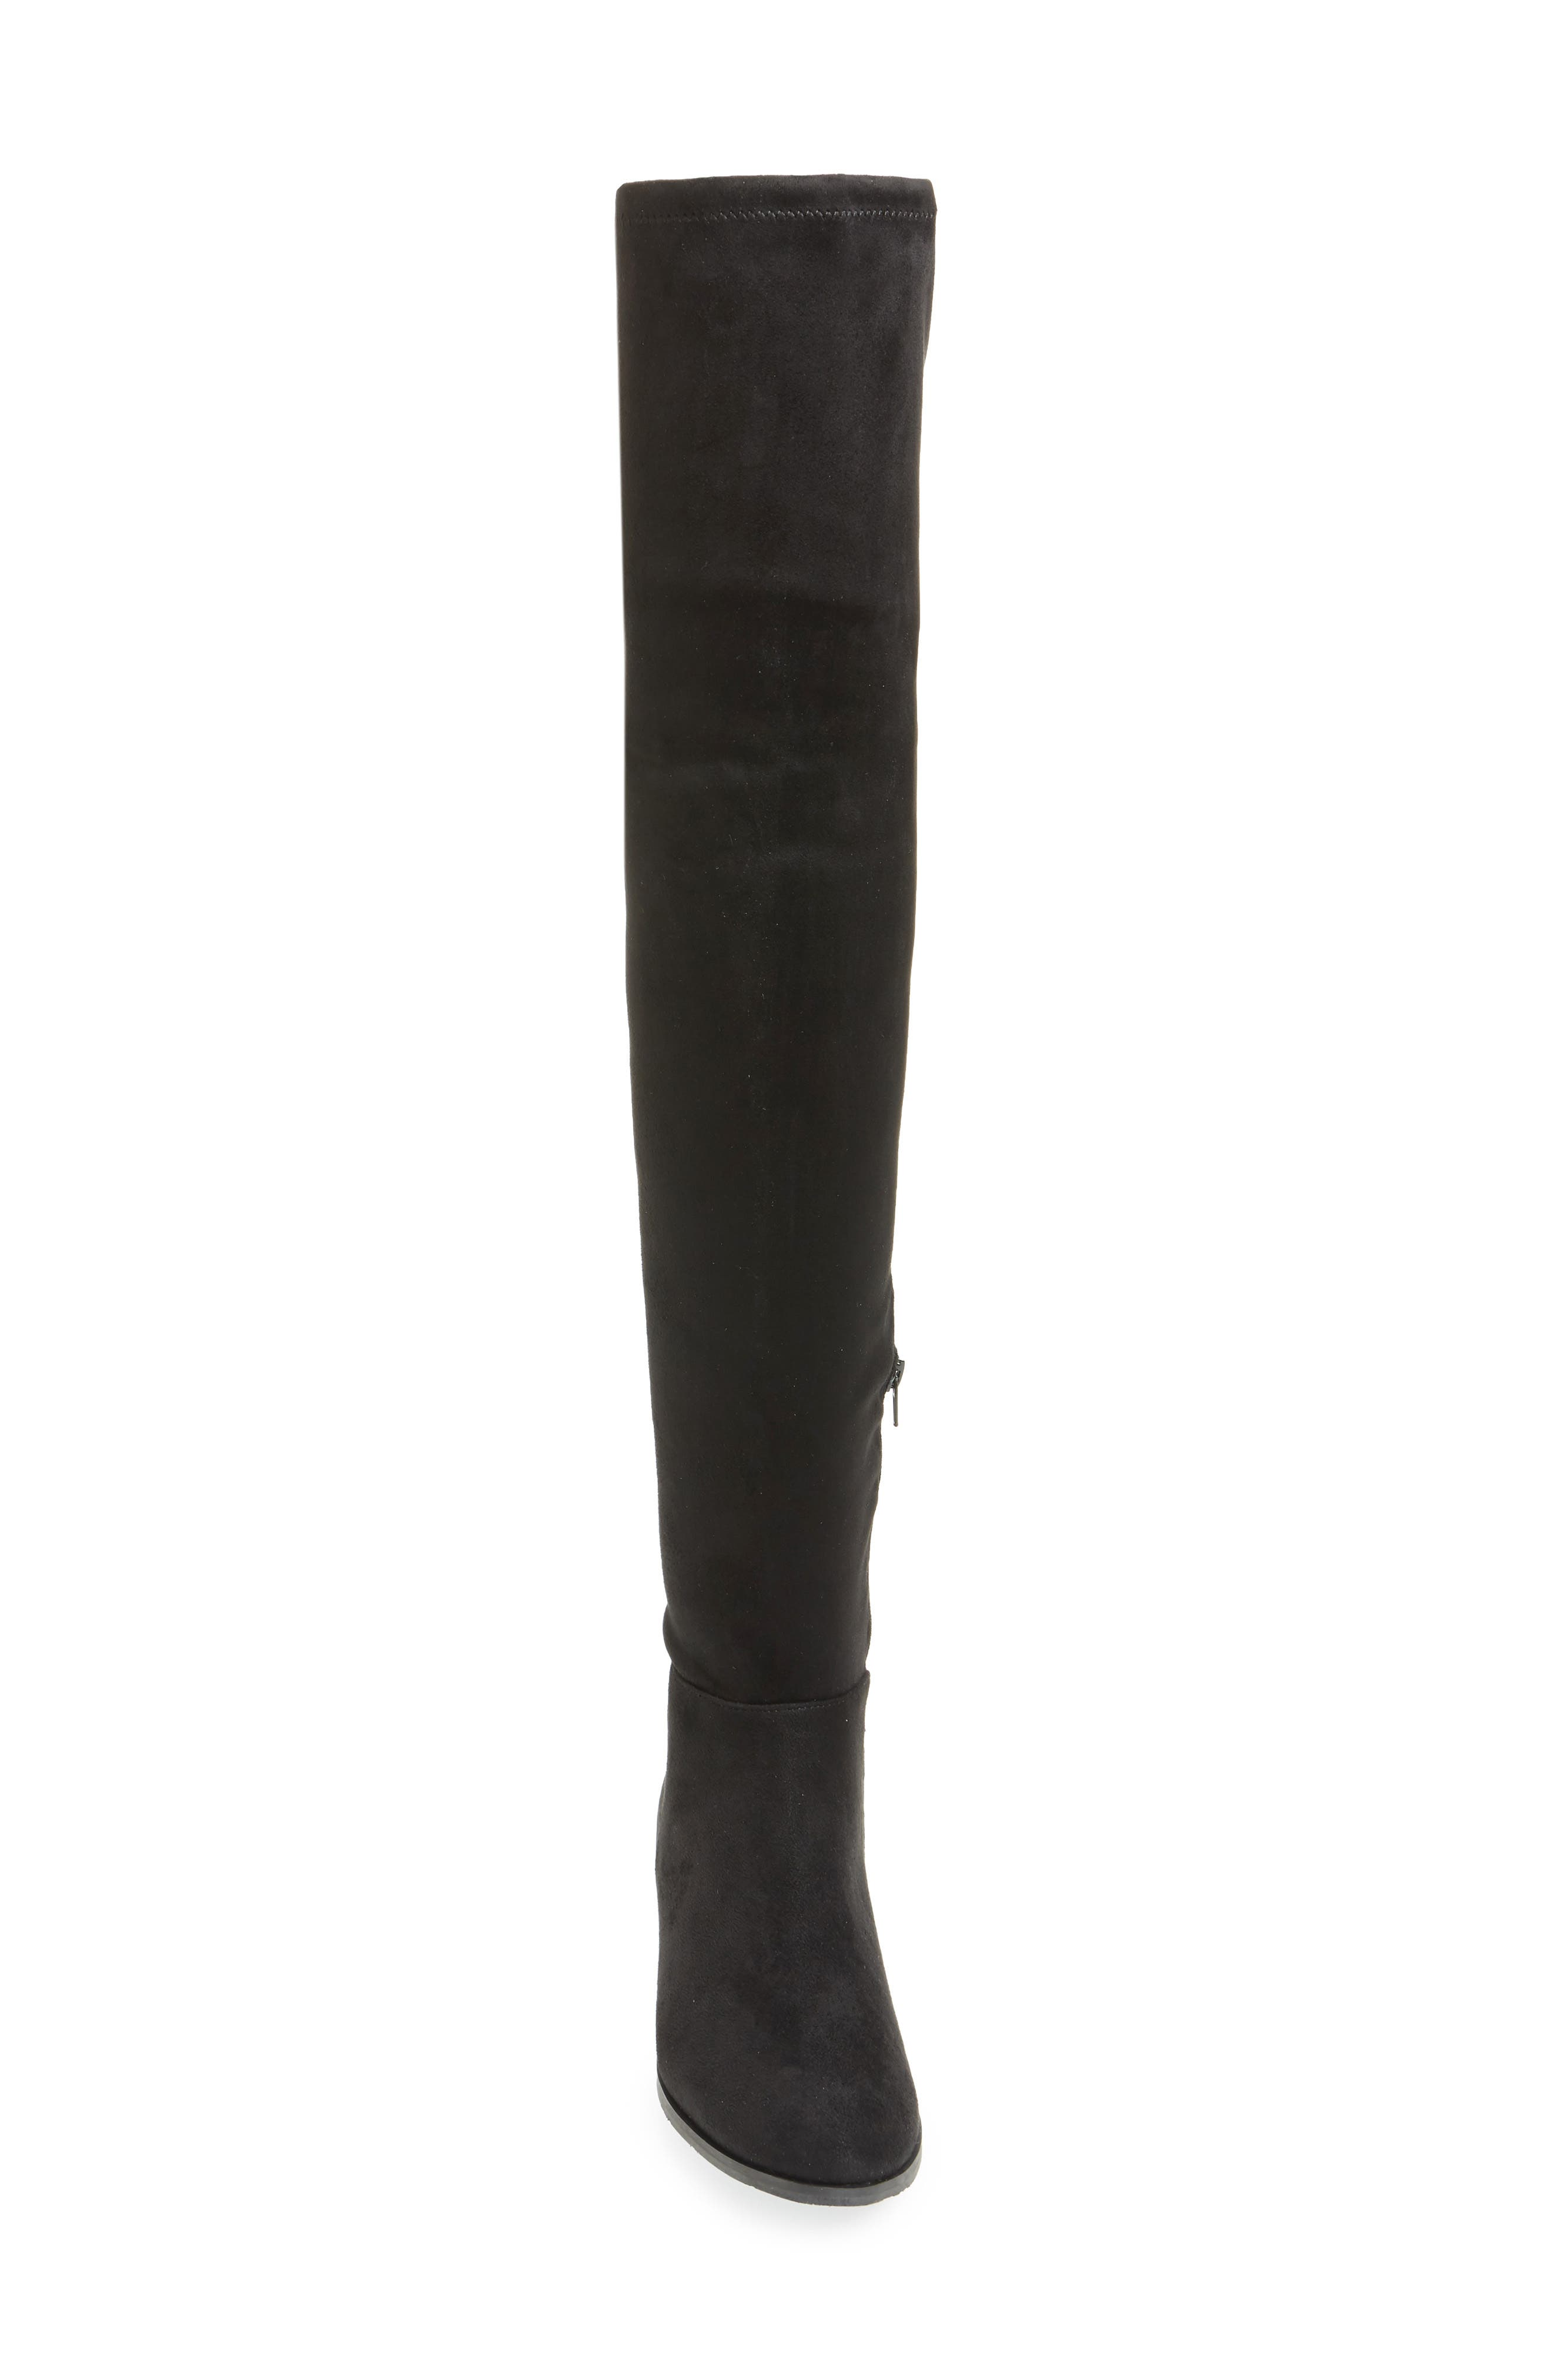 CHINESE LAUNDRY, Richie Knee High Boot, Alternate thumbnail 4, color, 001